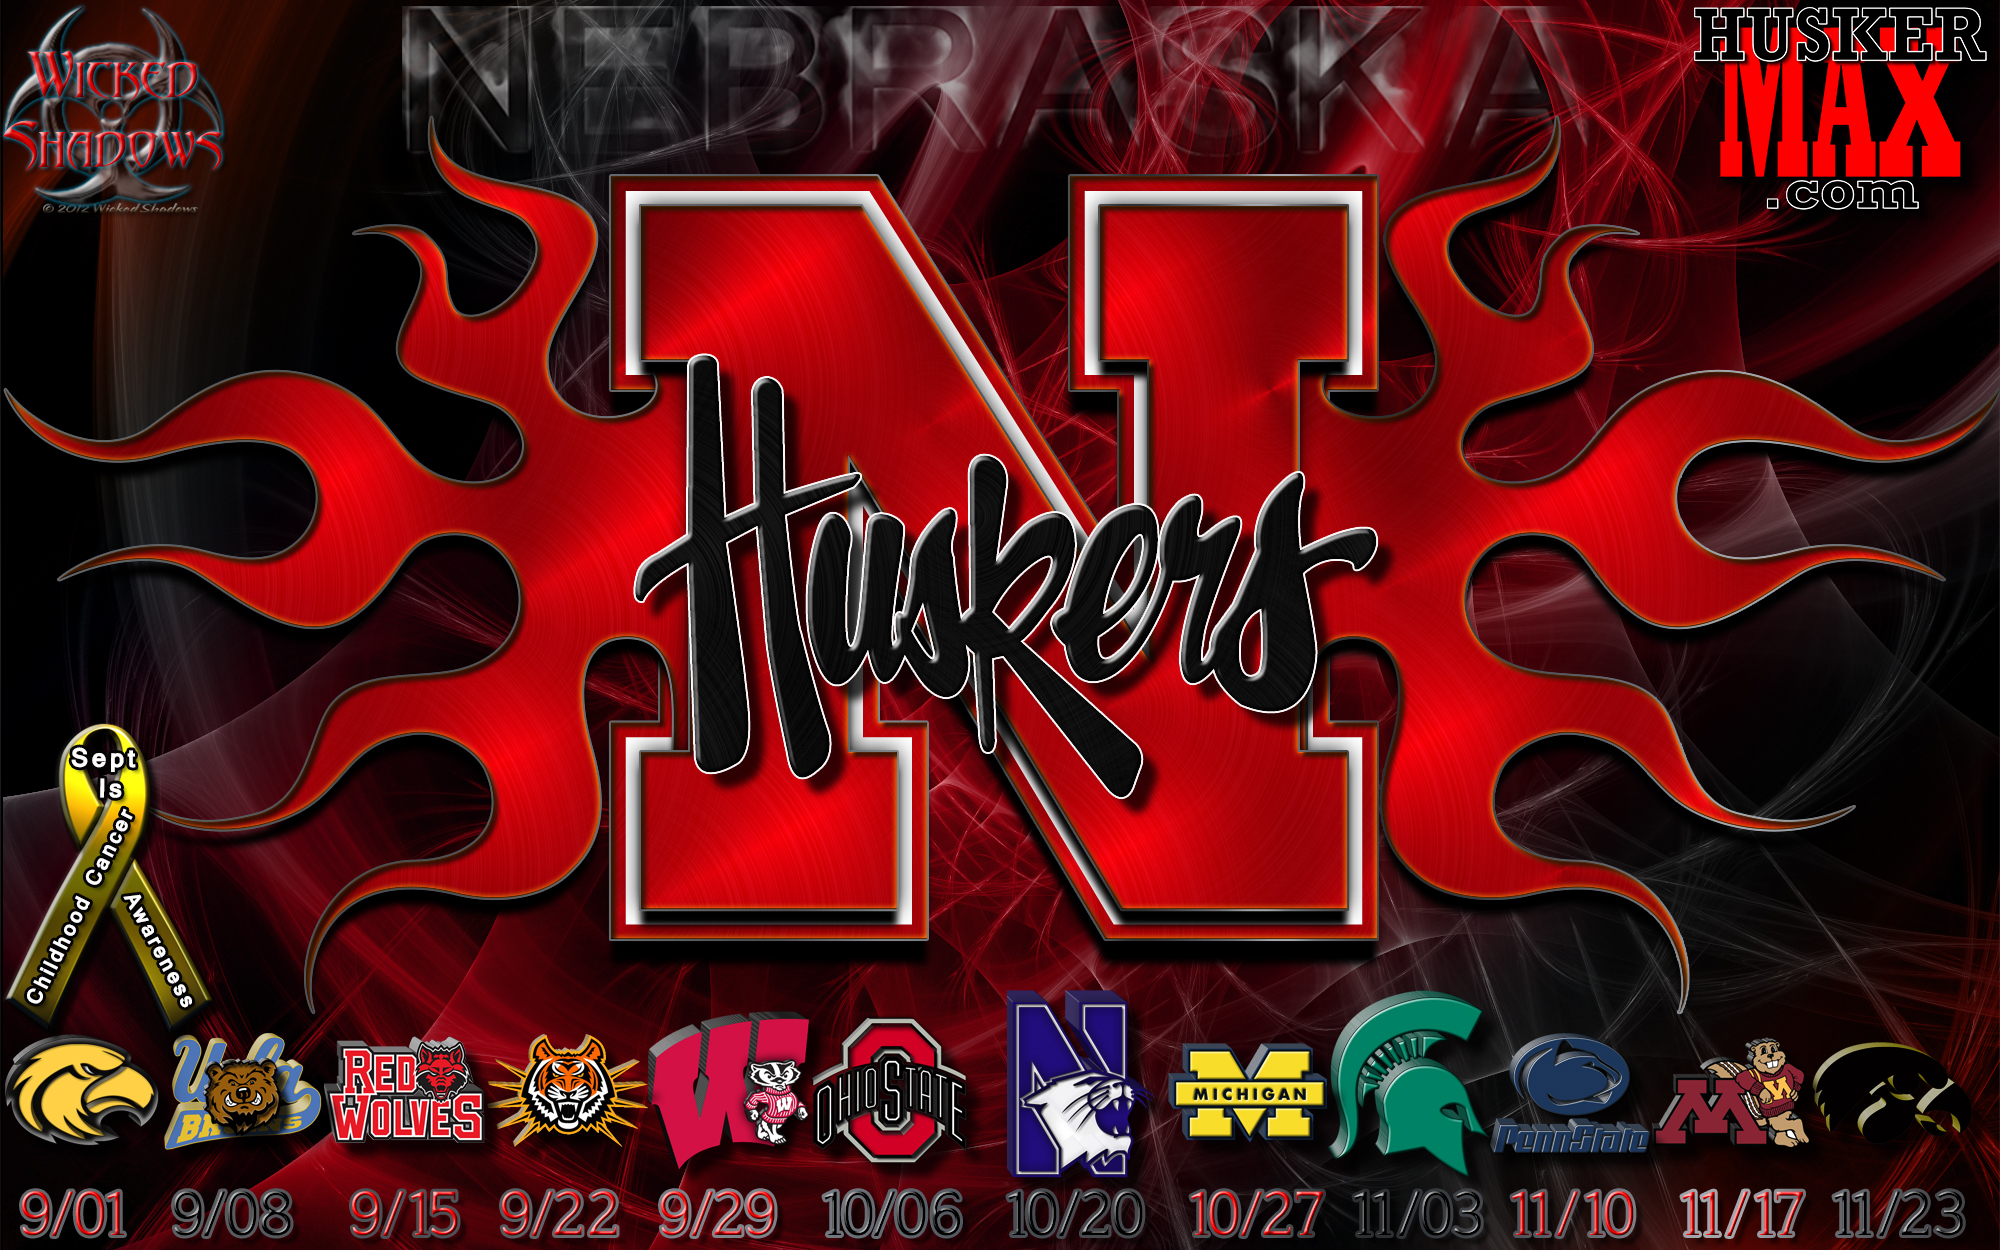 Nebraska Huskers 2012 football schedule wallpaper 2000x1250